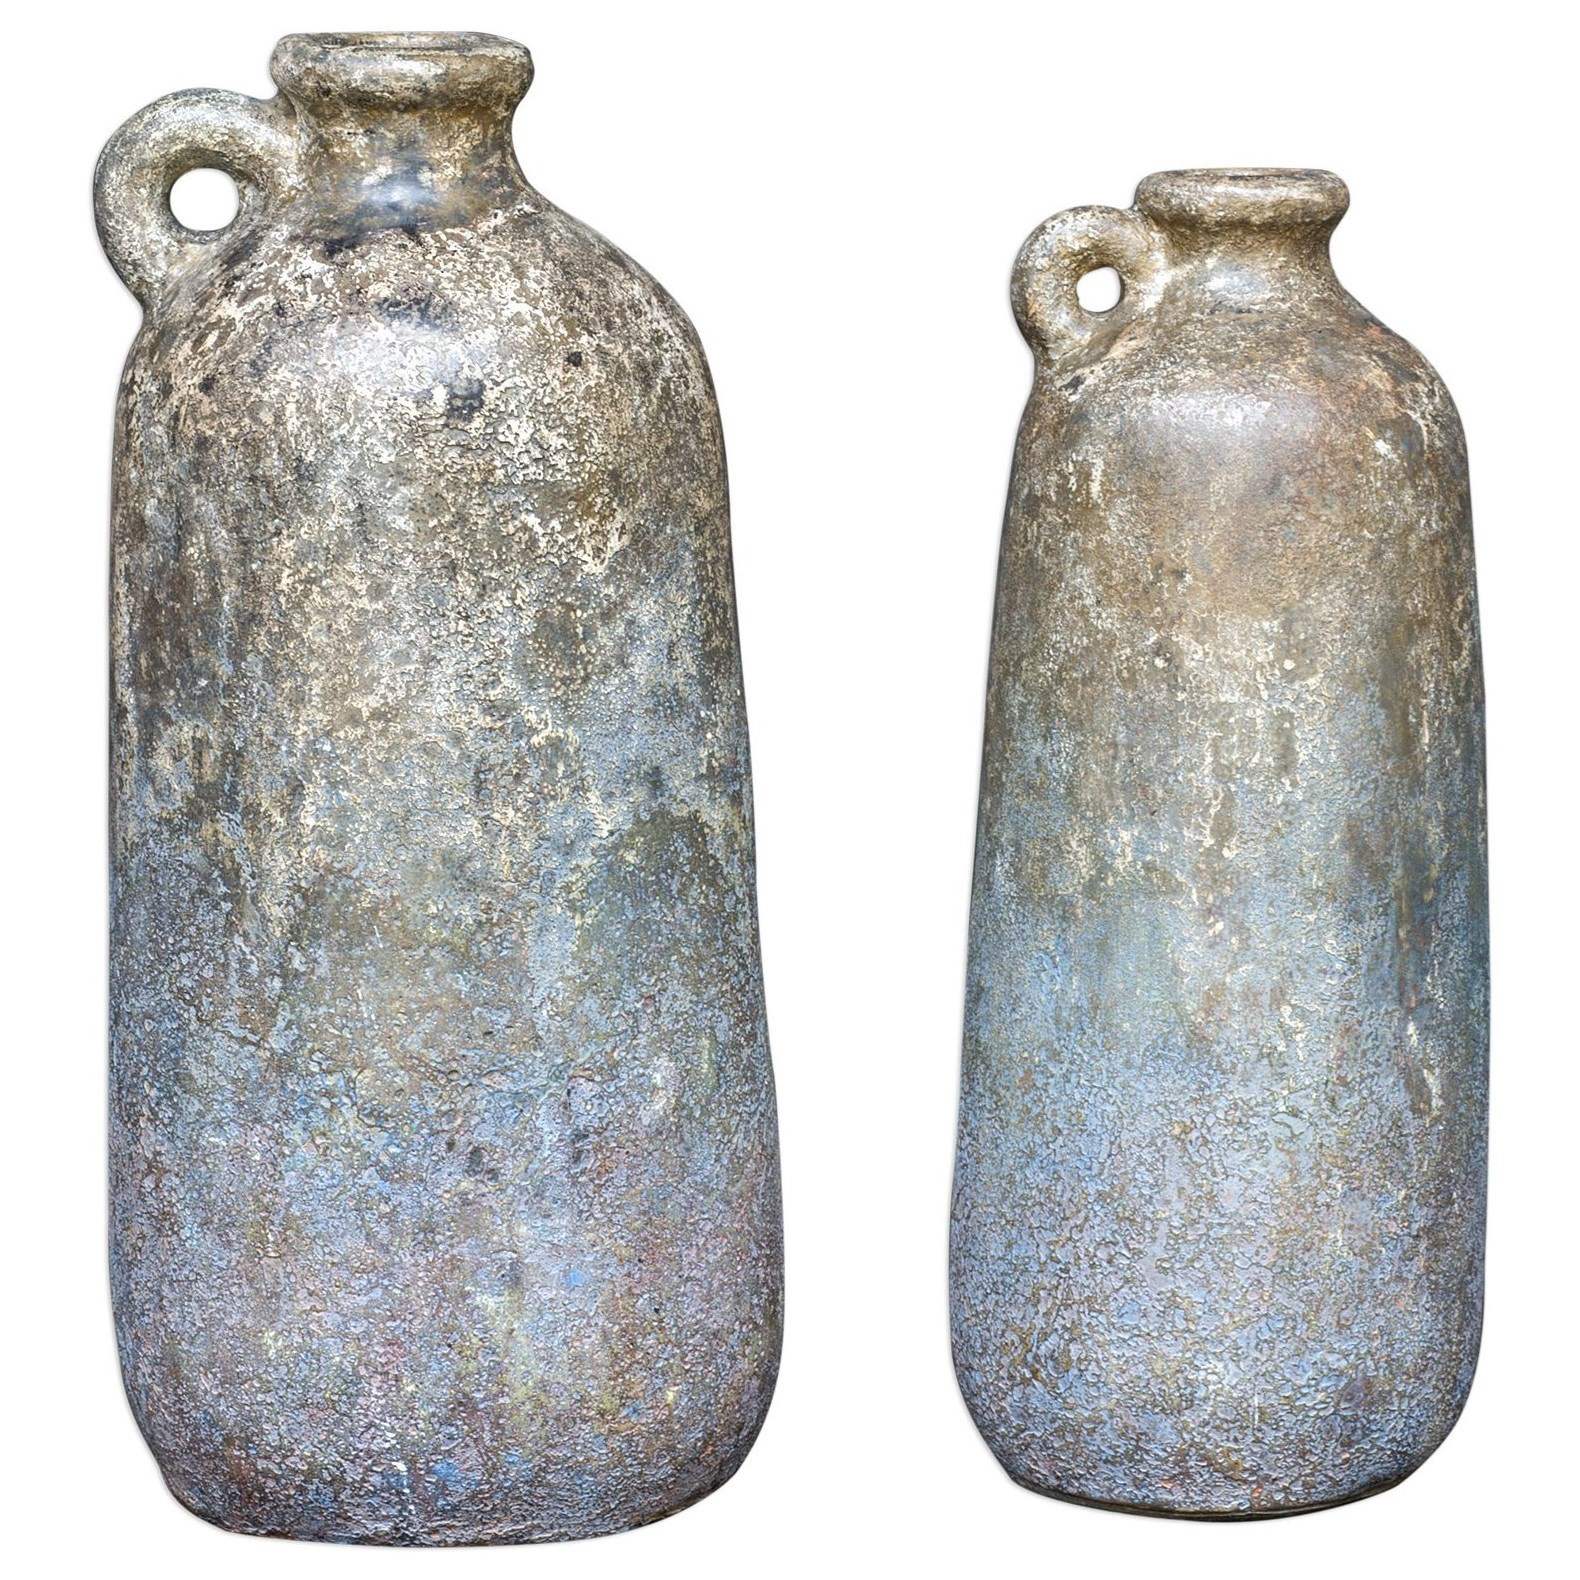 Accessories Ragini Terracotta Bottles, S/2 at Becker Furniture